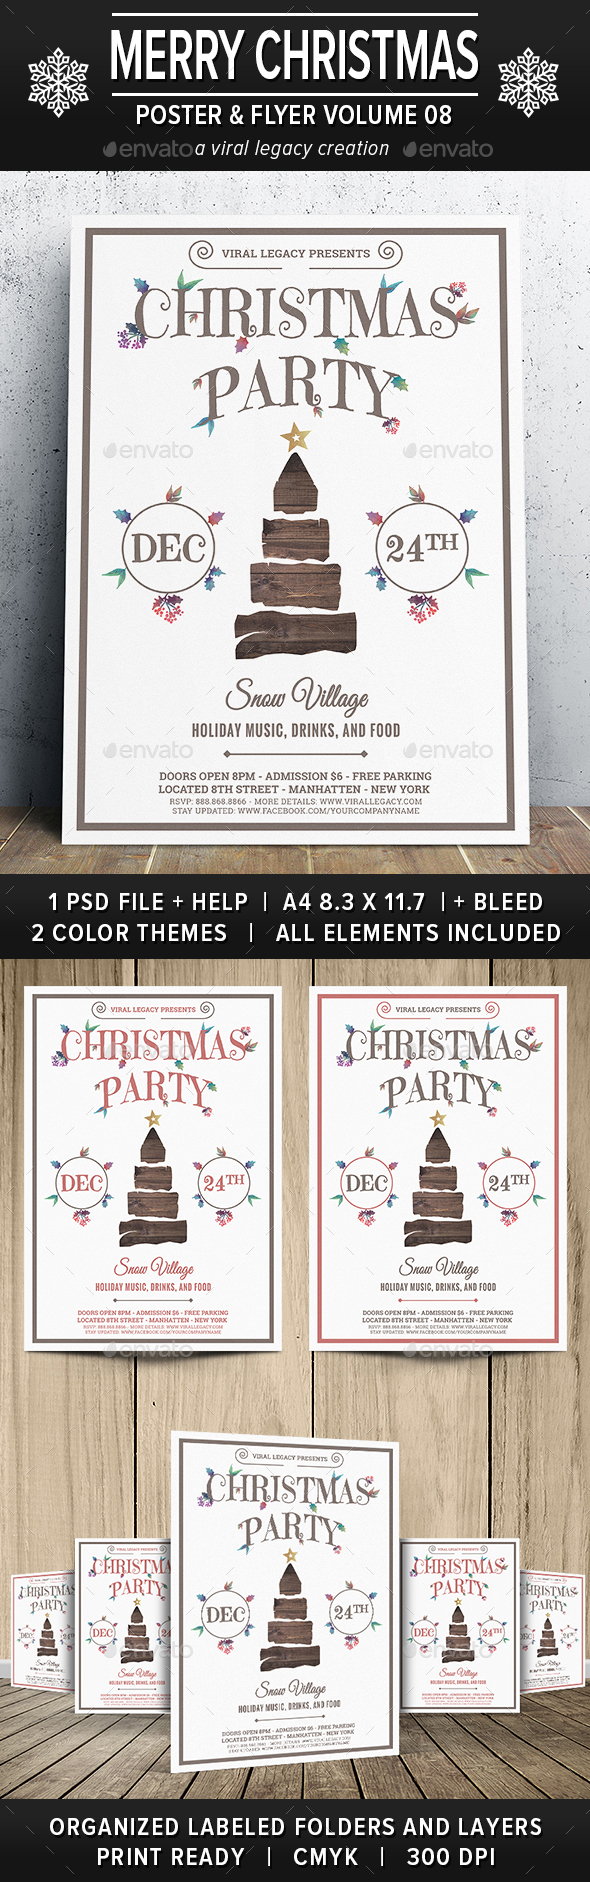 Merry Christmas Poster / Flyer V08 - Events Flyers